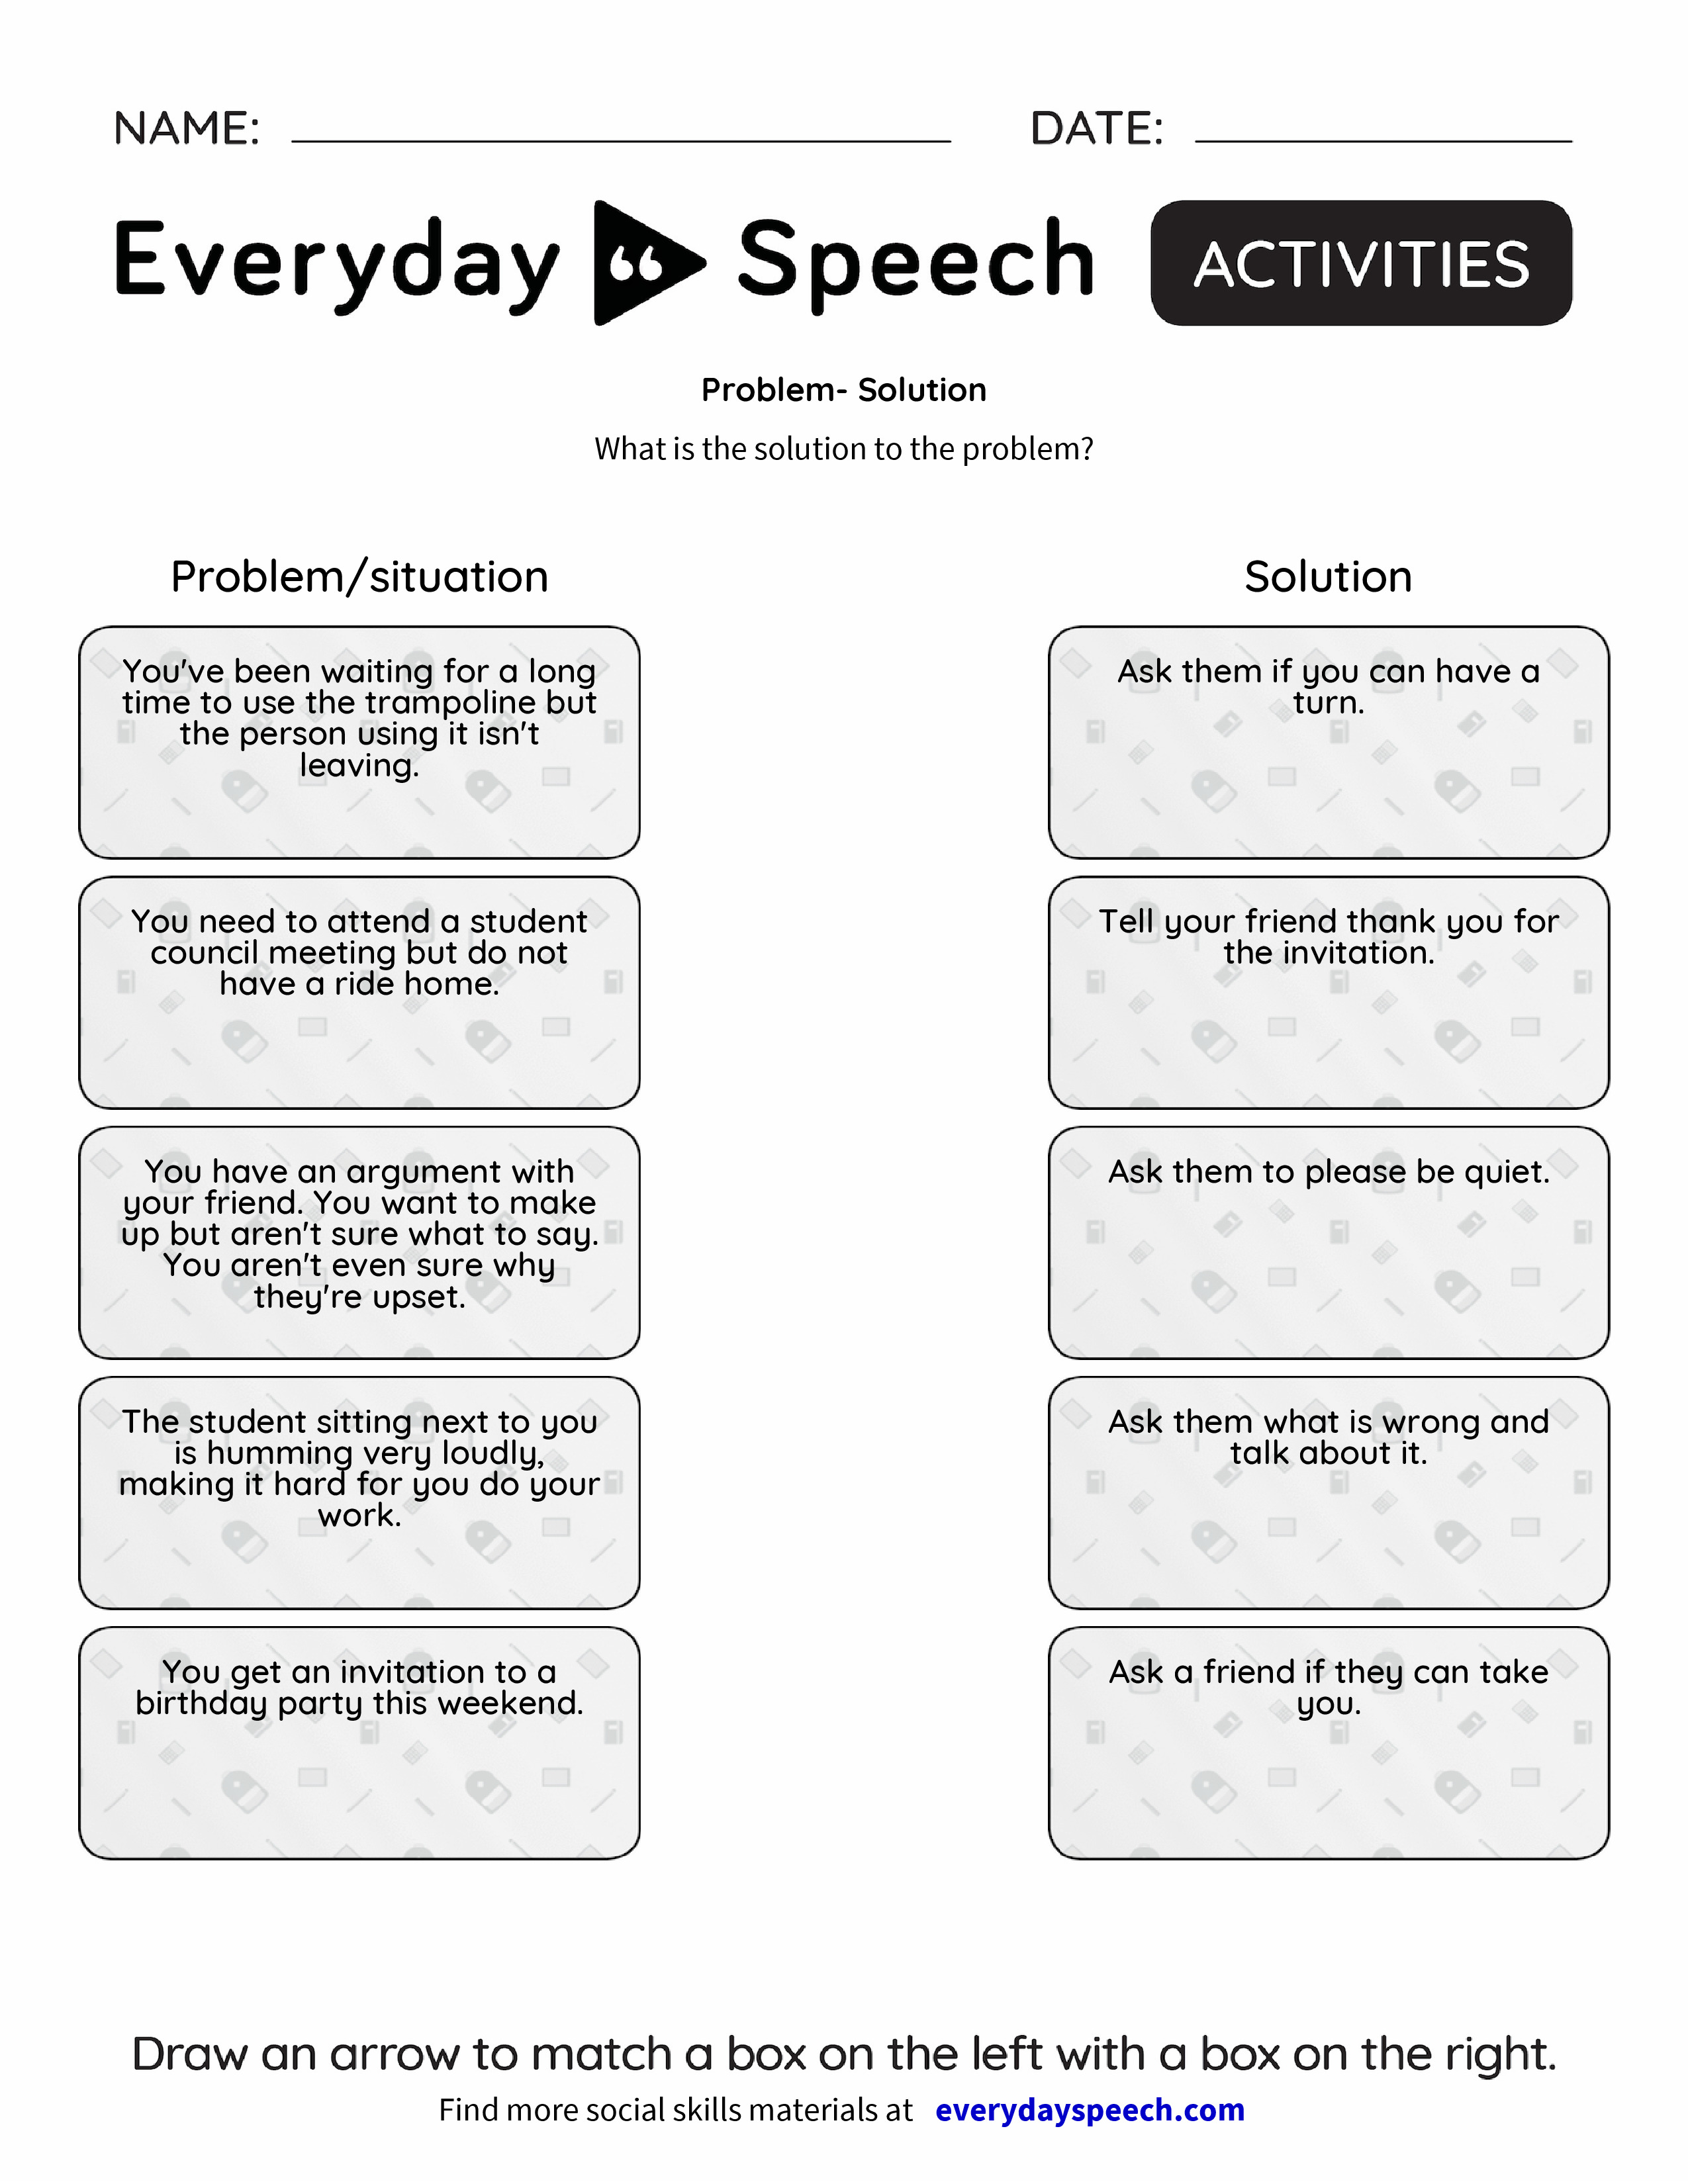 Worksheets Problem Solution Worksheets problem solution everyday speech preview preview